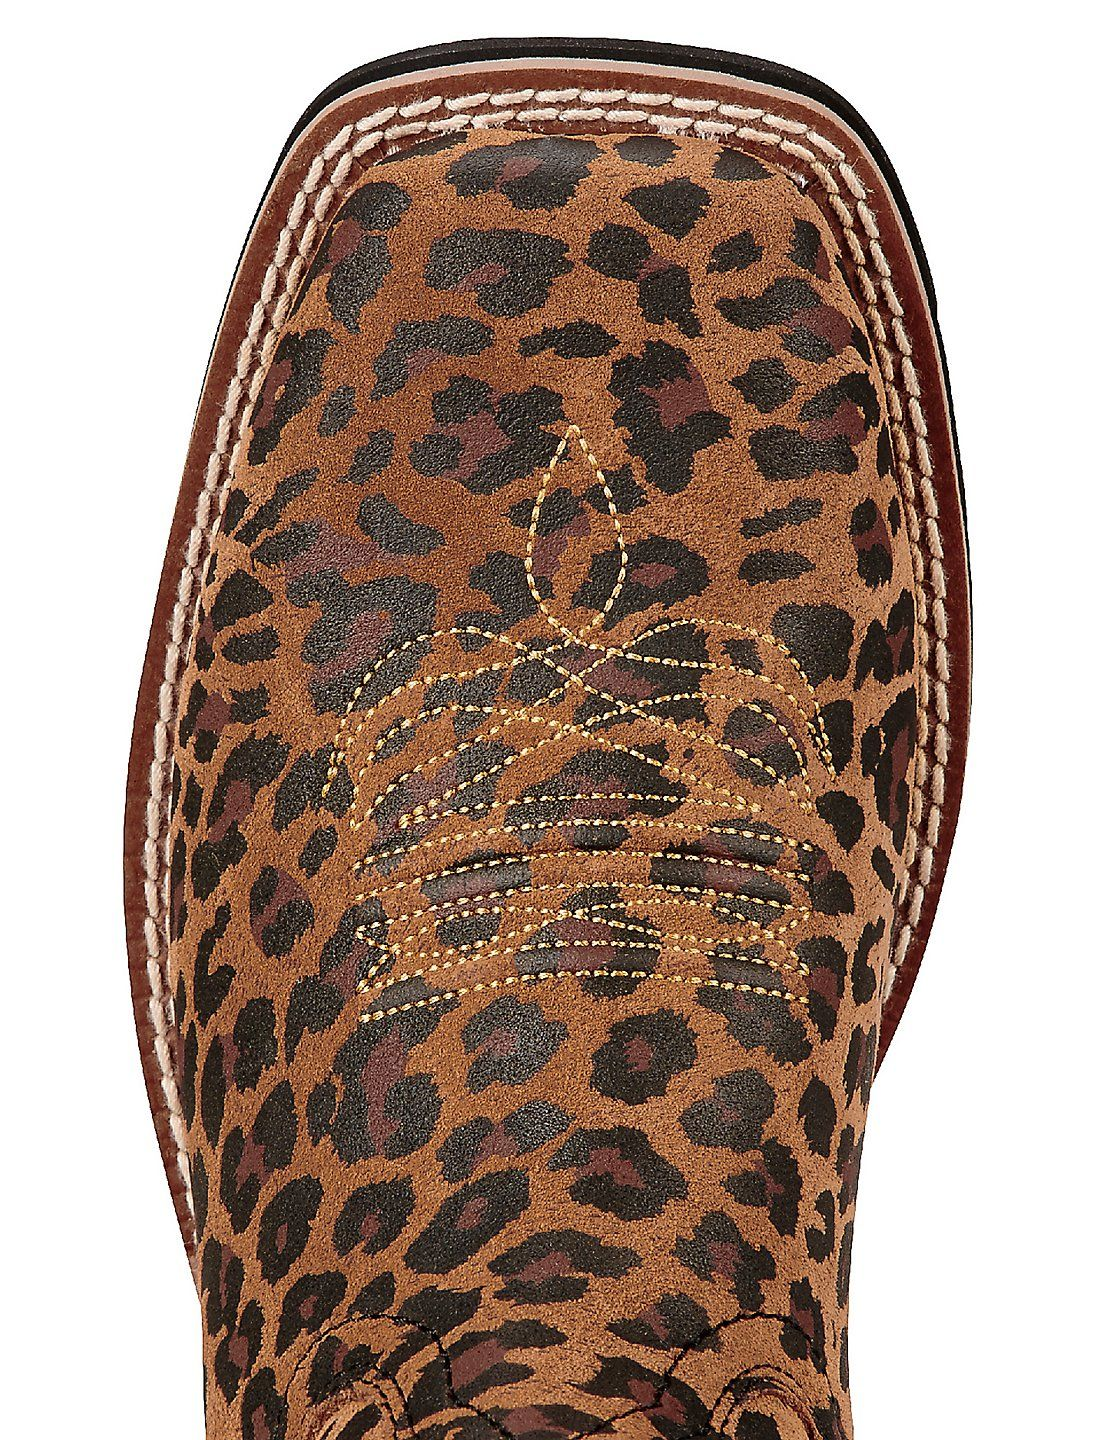 e555f744b1553d Ariat Fatbaby Heritage Women s Cheetah Print Square Toe Western Boots